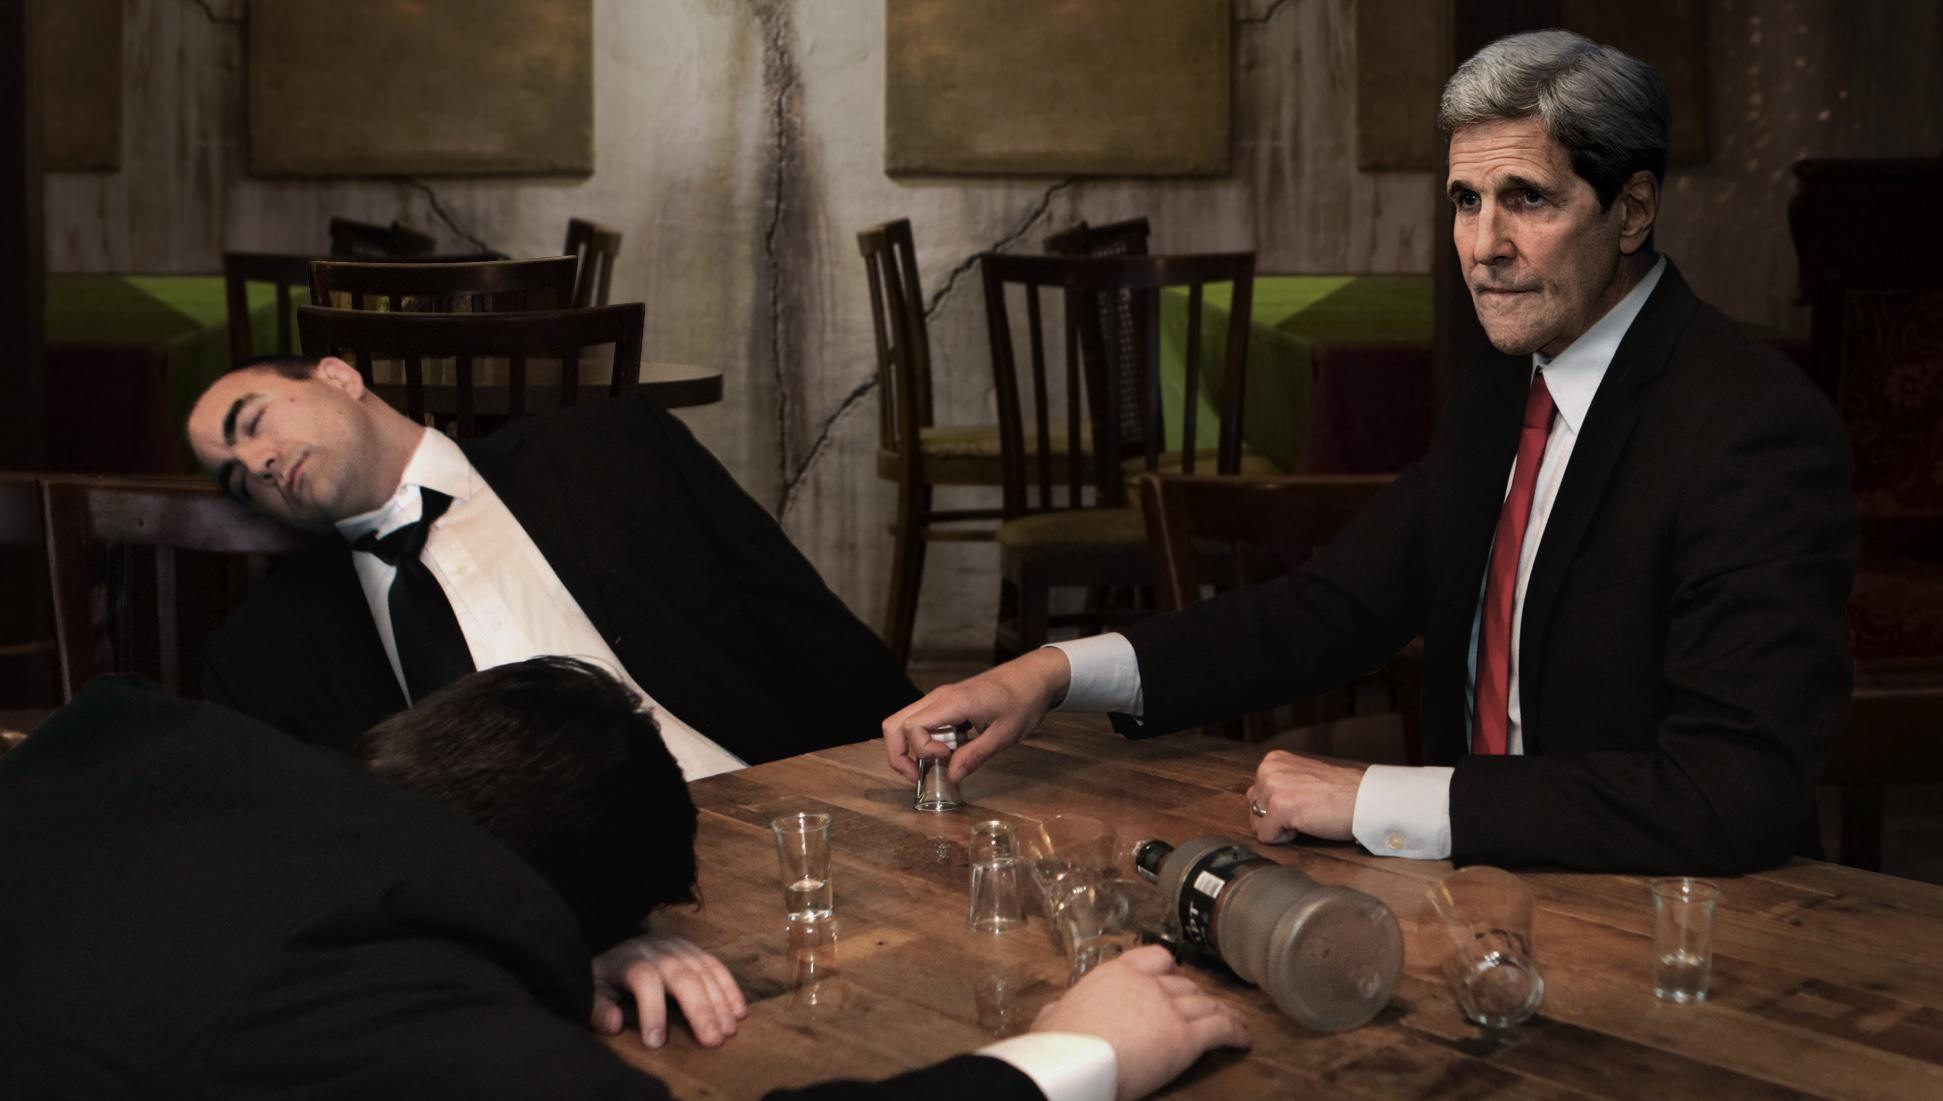 RT @TheOnion: Kerry Downs Another Vodka Shot As The Last Of Putin's Security Detail Passes Out http://t.co/aEEbhHjnVL http://t.co/cuHYJcj4FZ